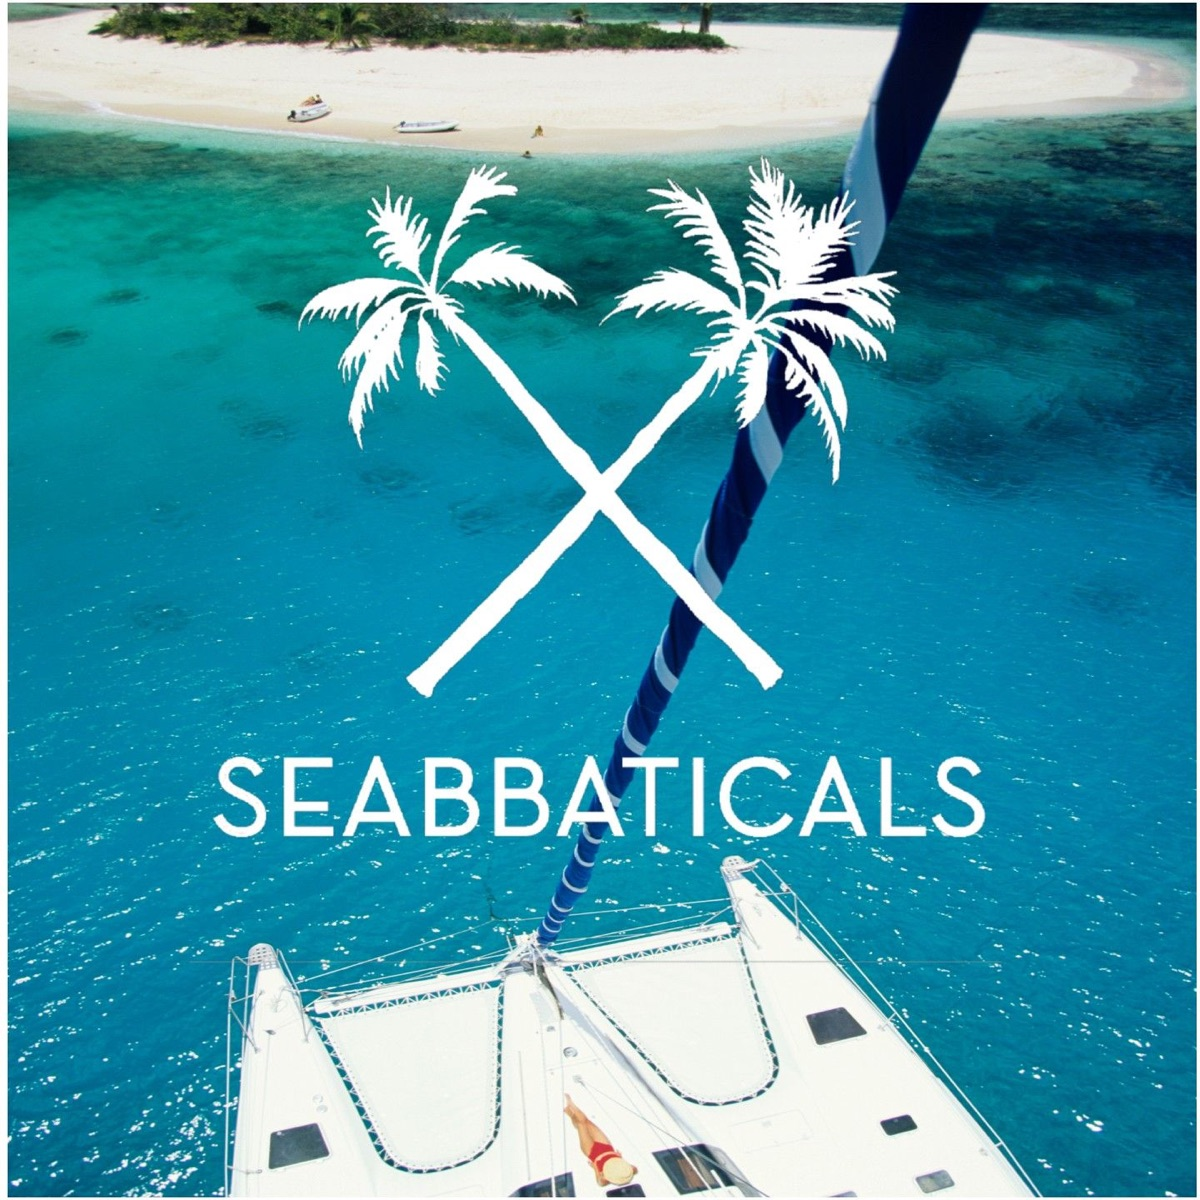 SEABBATICAL SUMMIT LIVE - Interviews with Experts & Explorers